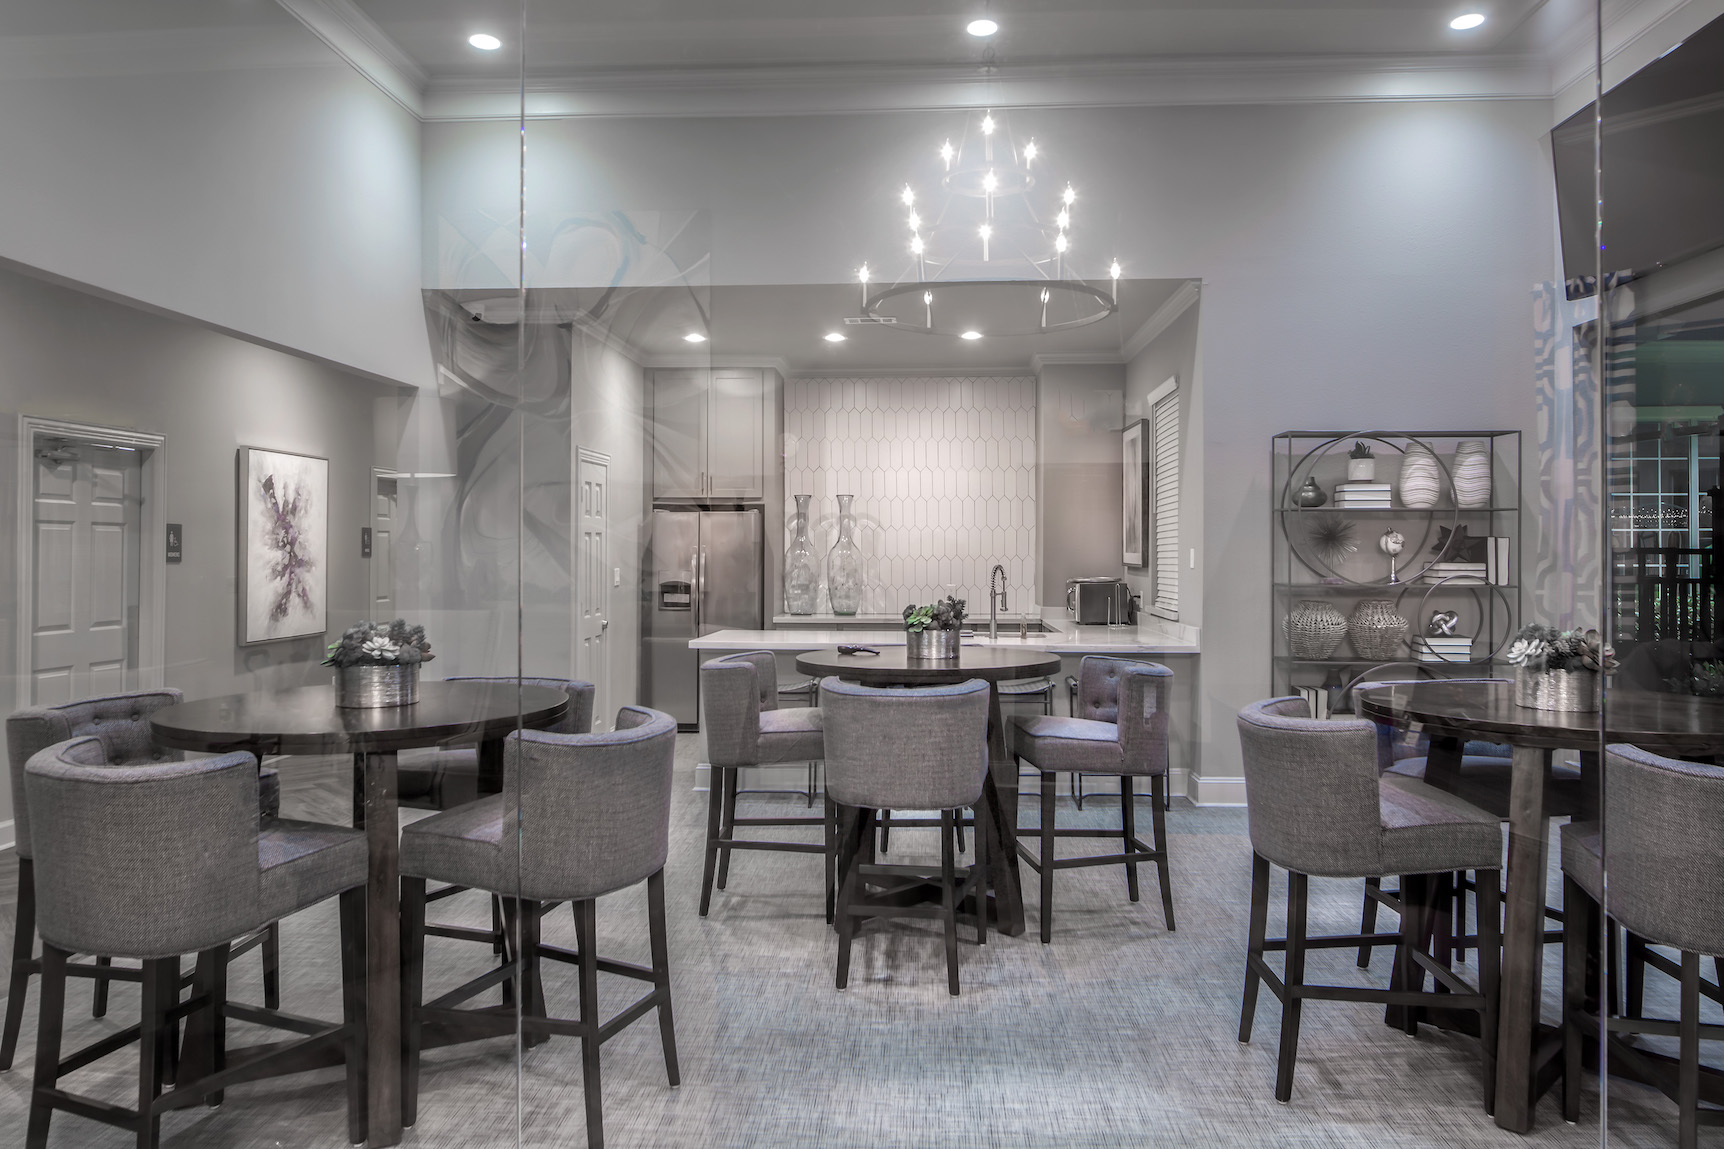 Planned Resident Events at The Link, a Community of Luxury Apartments in Houston, Texas